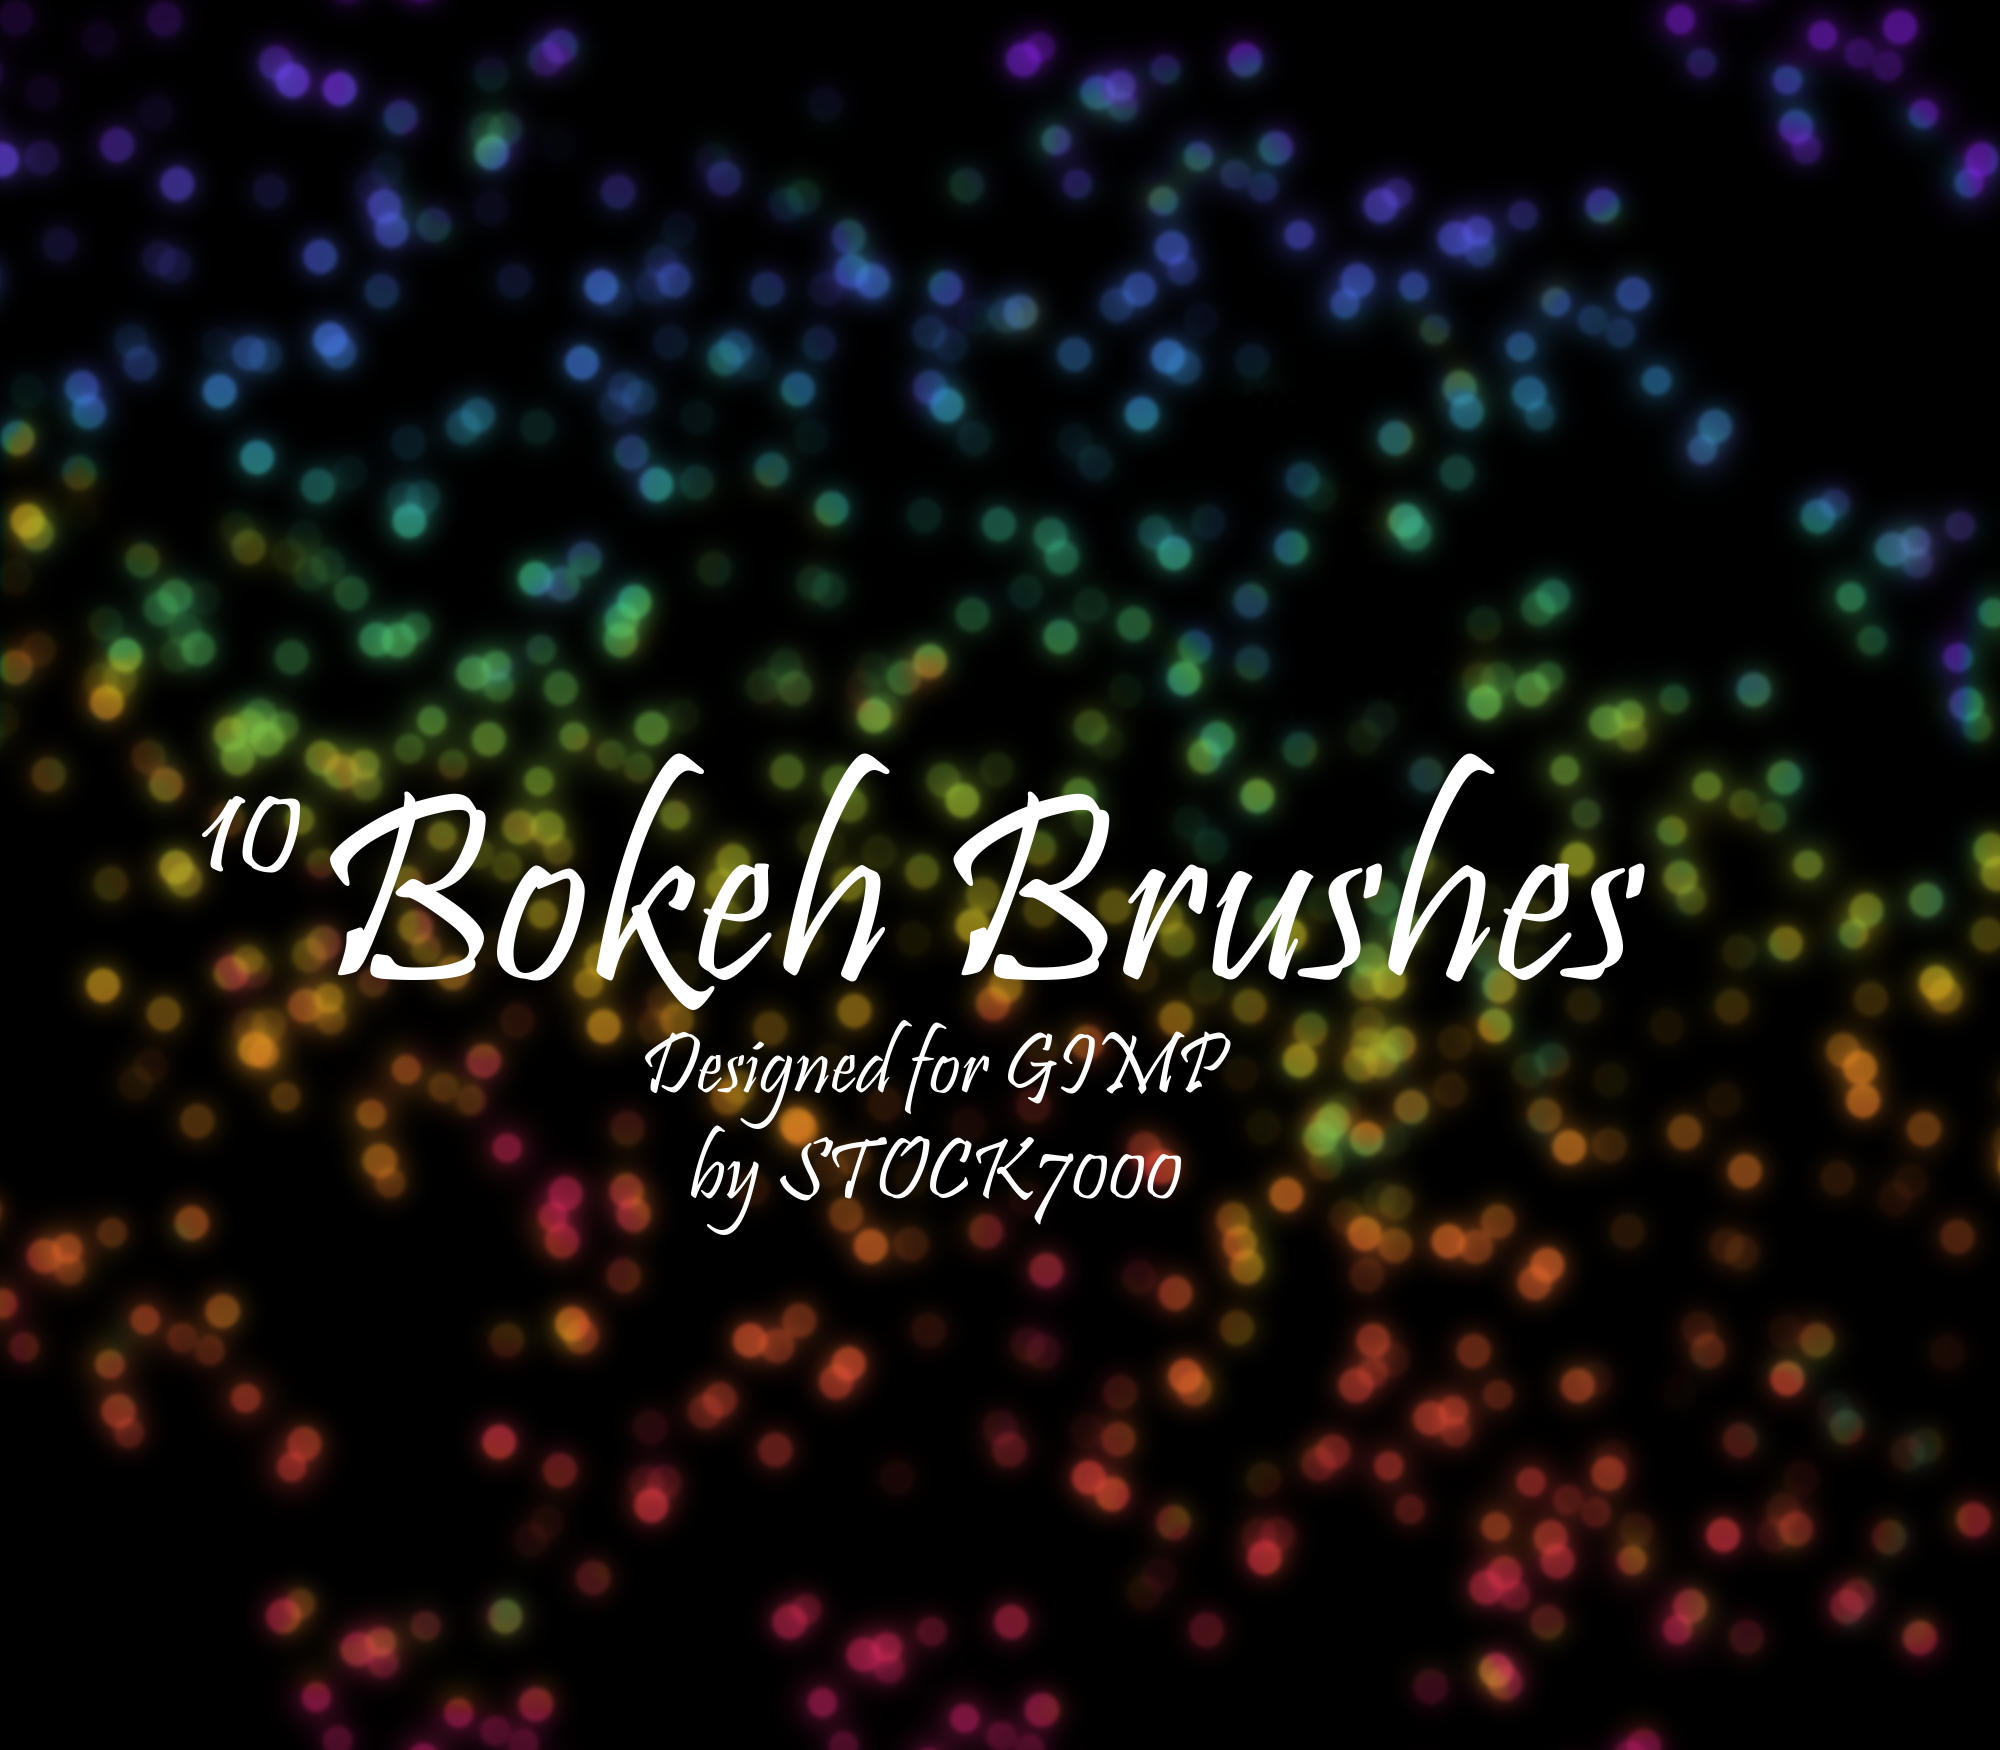 10 Bokeh Brushes by Stock7000